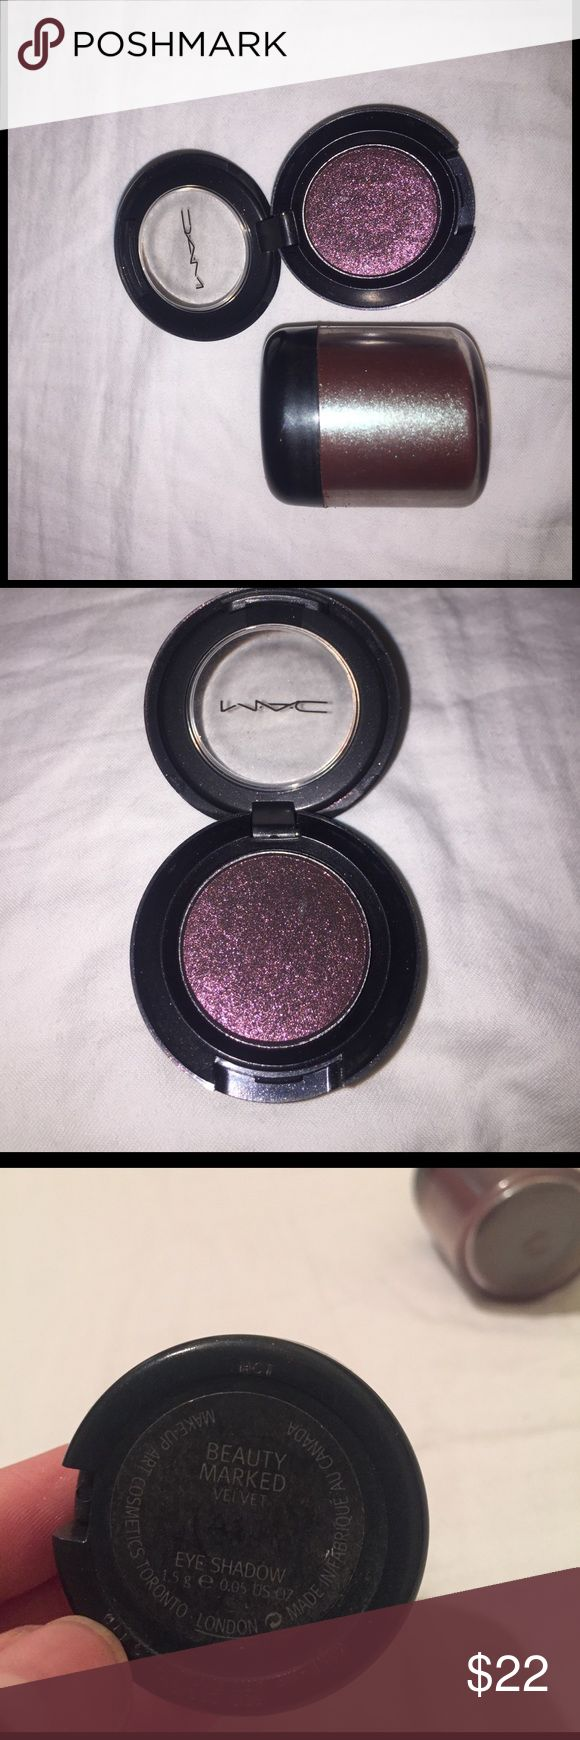 MAC Glitter eyeshadow bundle Marked Beauty has only been swatched and never used. The one in the big pot has a little more than halfway, very pigmented. The brand and name has come off on the big pot but from MAC. Very pretty colors! MAC Cosmetics Makeup Eyeshadow